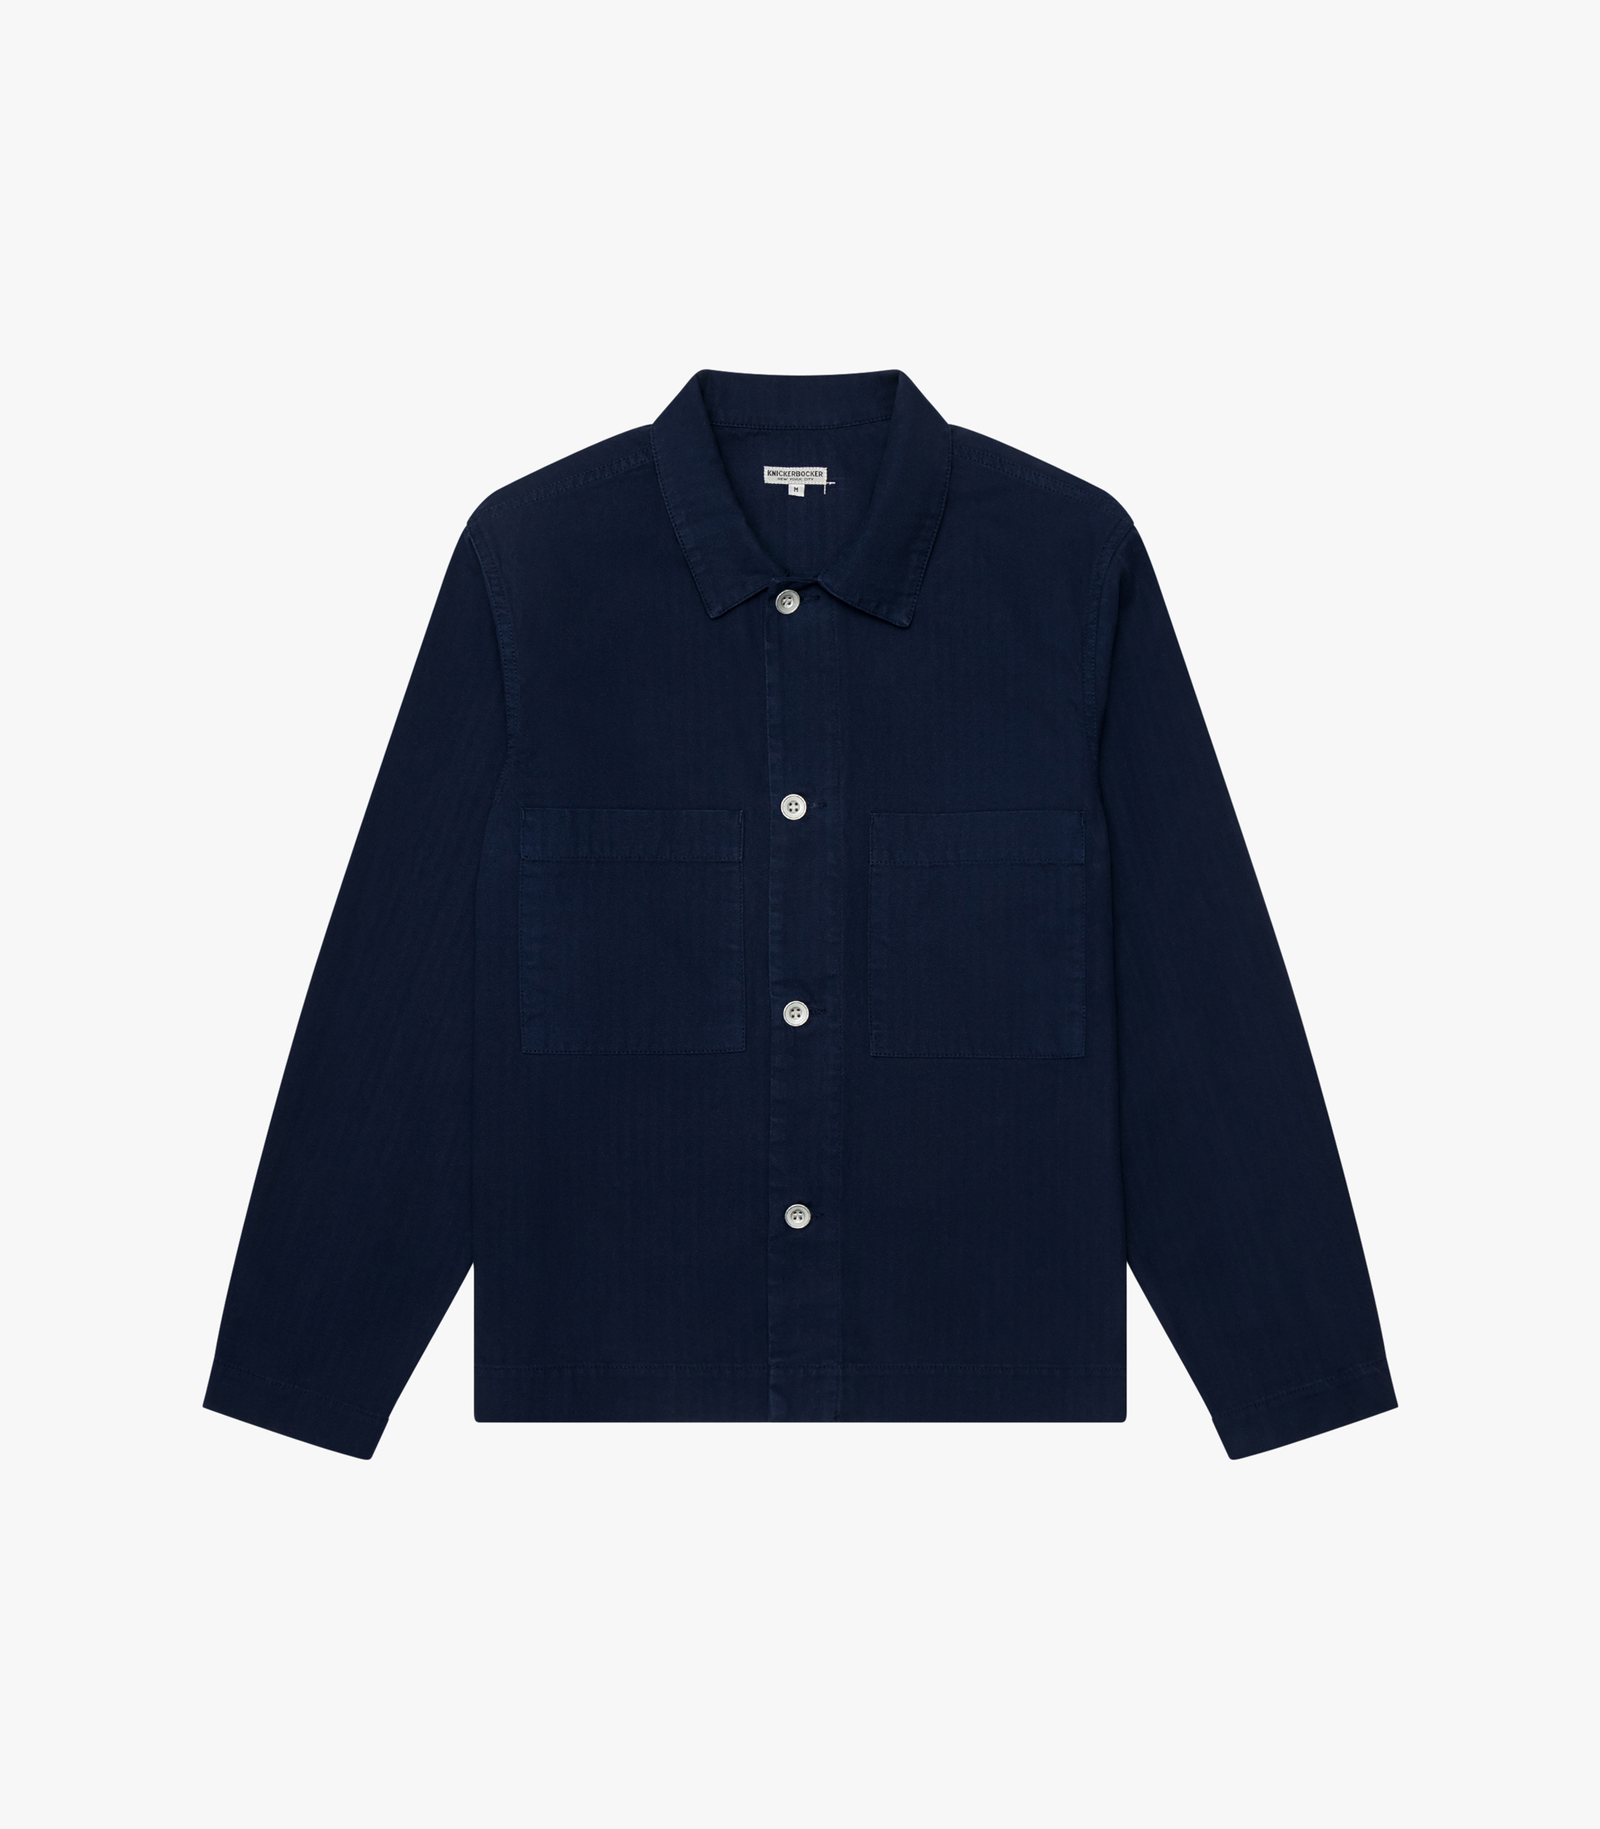 Knickerbocker - Chore Shirt Jacket - Navy